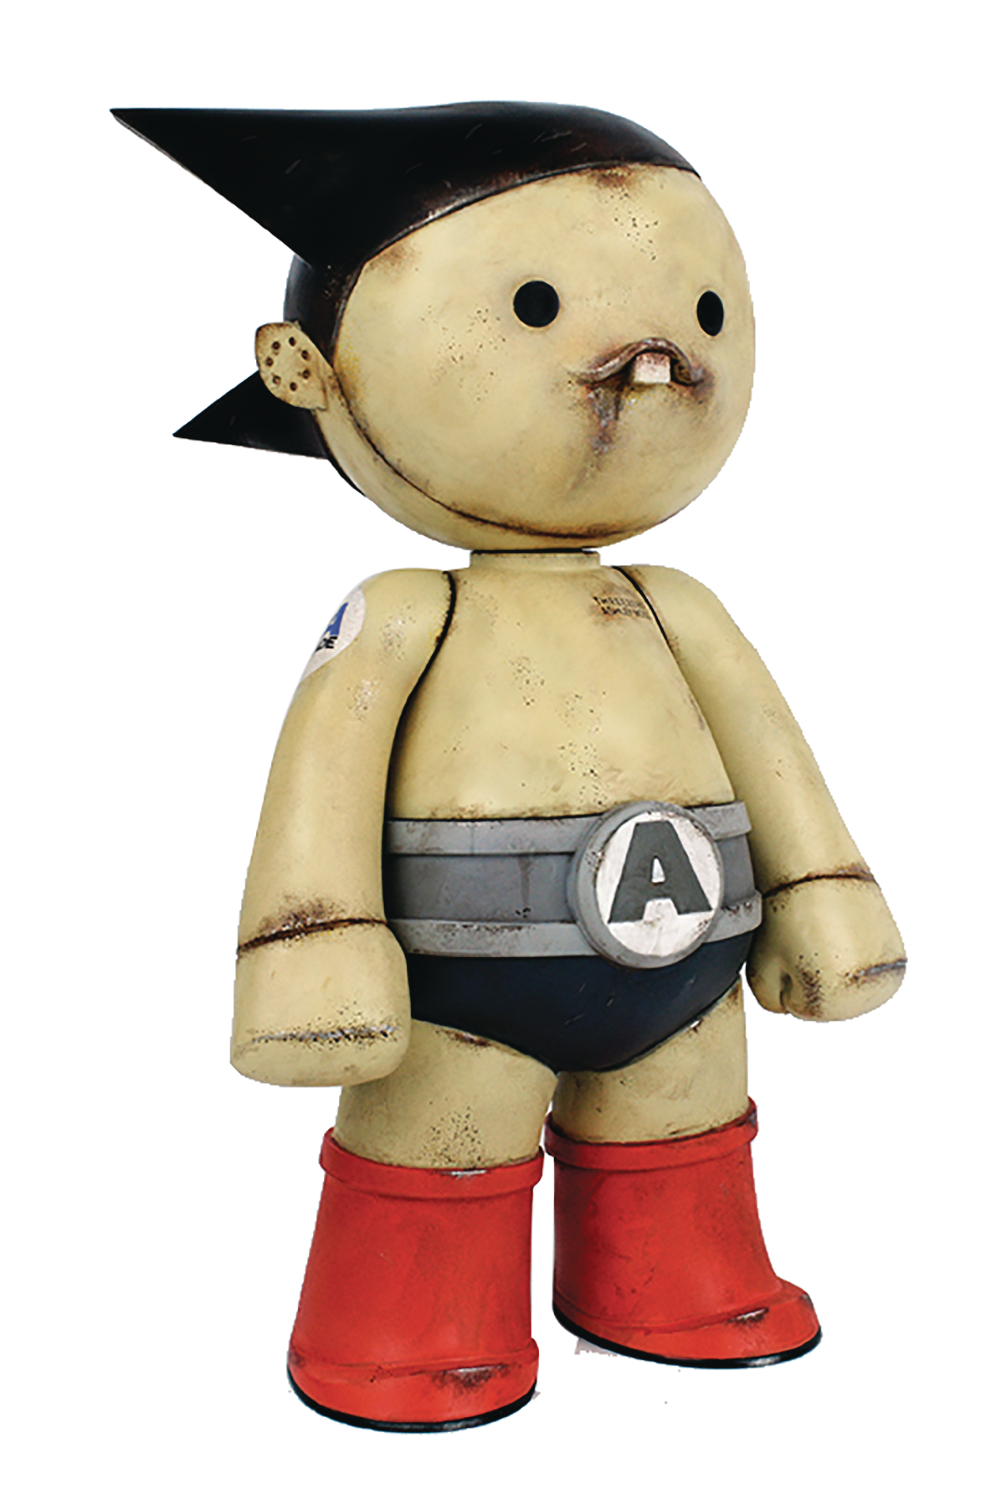 ASHTRO LAD 16IN DECADE VINYL FIGURE (Net)